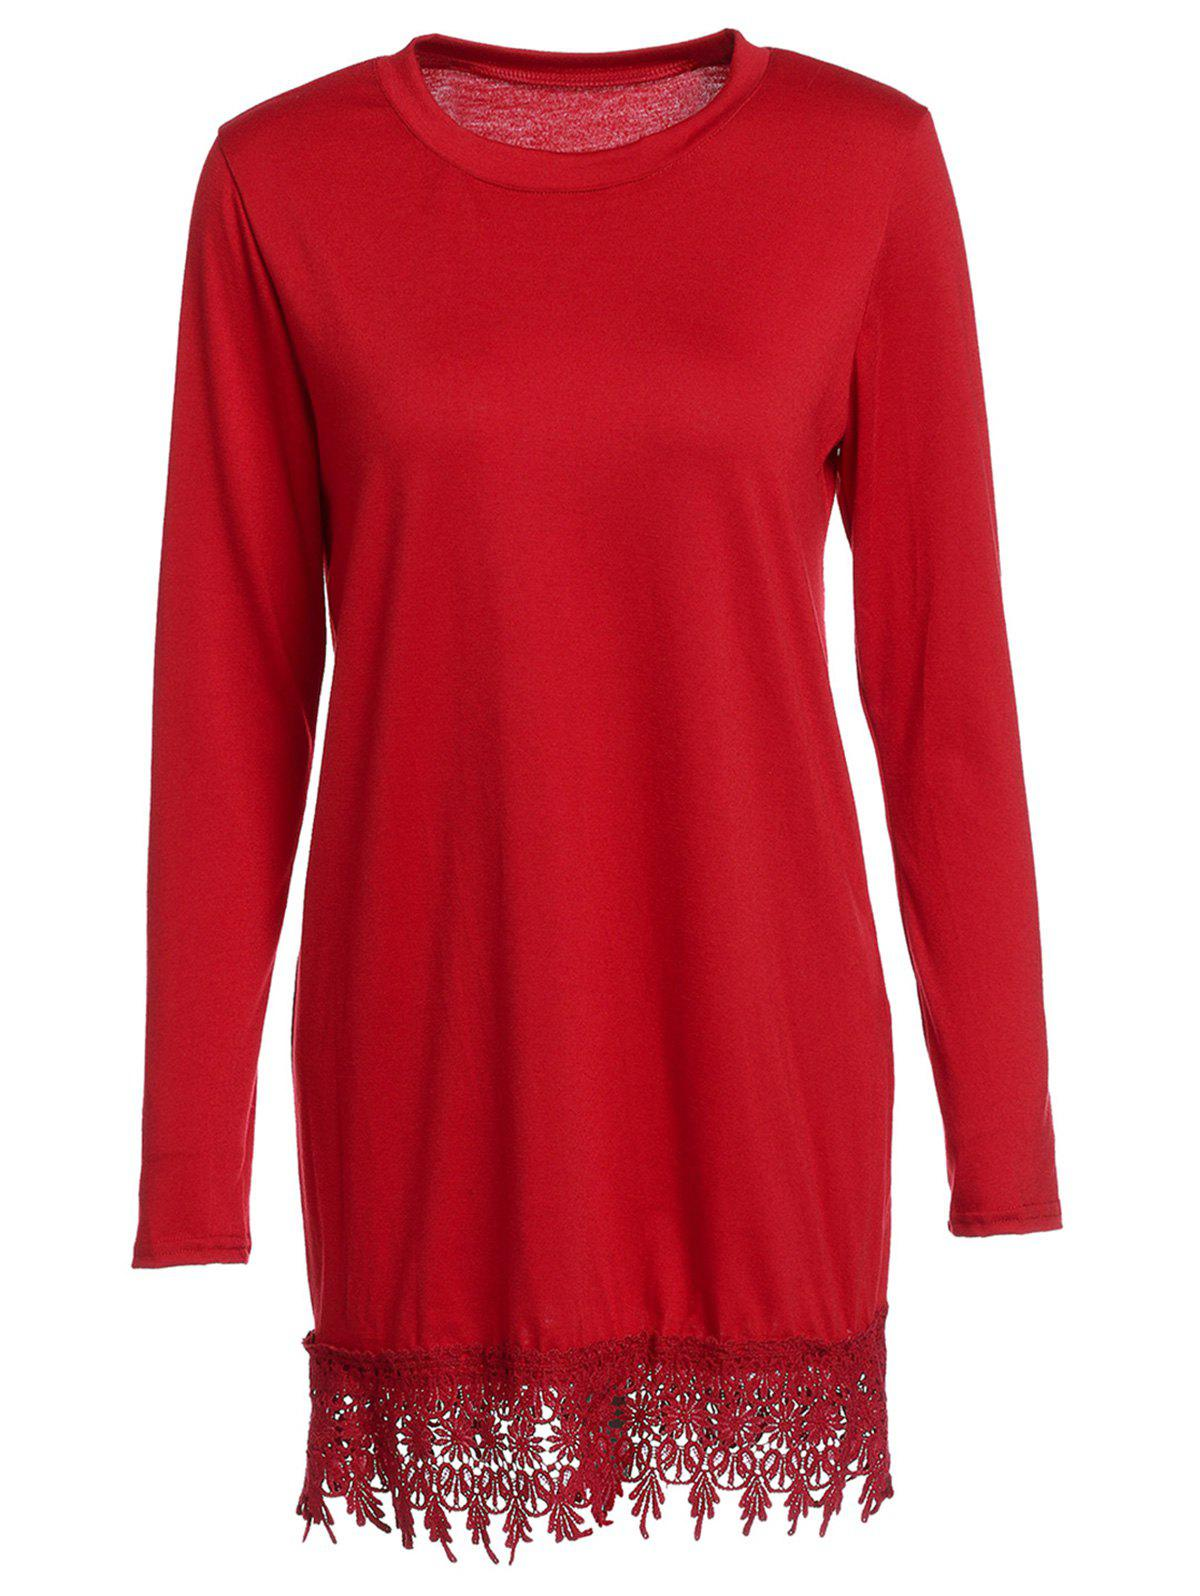 Charming Long Sleeve Round Neck Laciness Solid Color Women's Dress - CLARET M